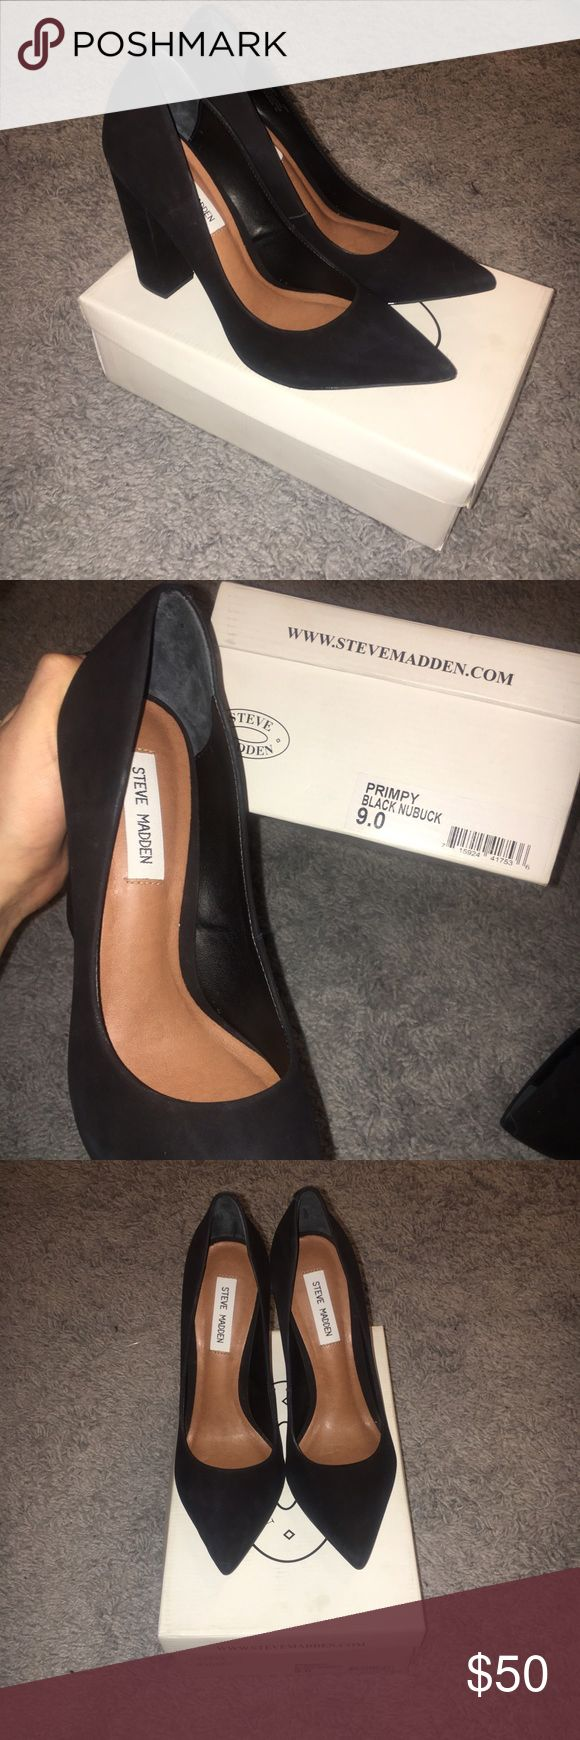 NEW Steve Madden Black Heels size 9 Steve Madden Primpy Black Nuback heels size 9 never worn! I recently sold them and had a family emergency come up and did not send the shoes out on time, I promise to send the shoes out the next day once purchased. Steve Madden Shoes Heels